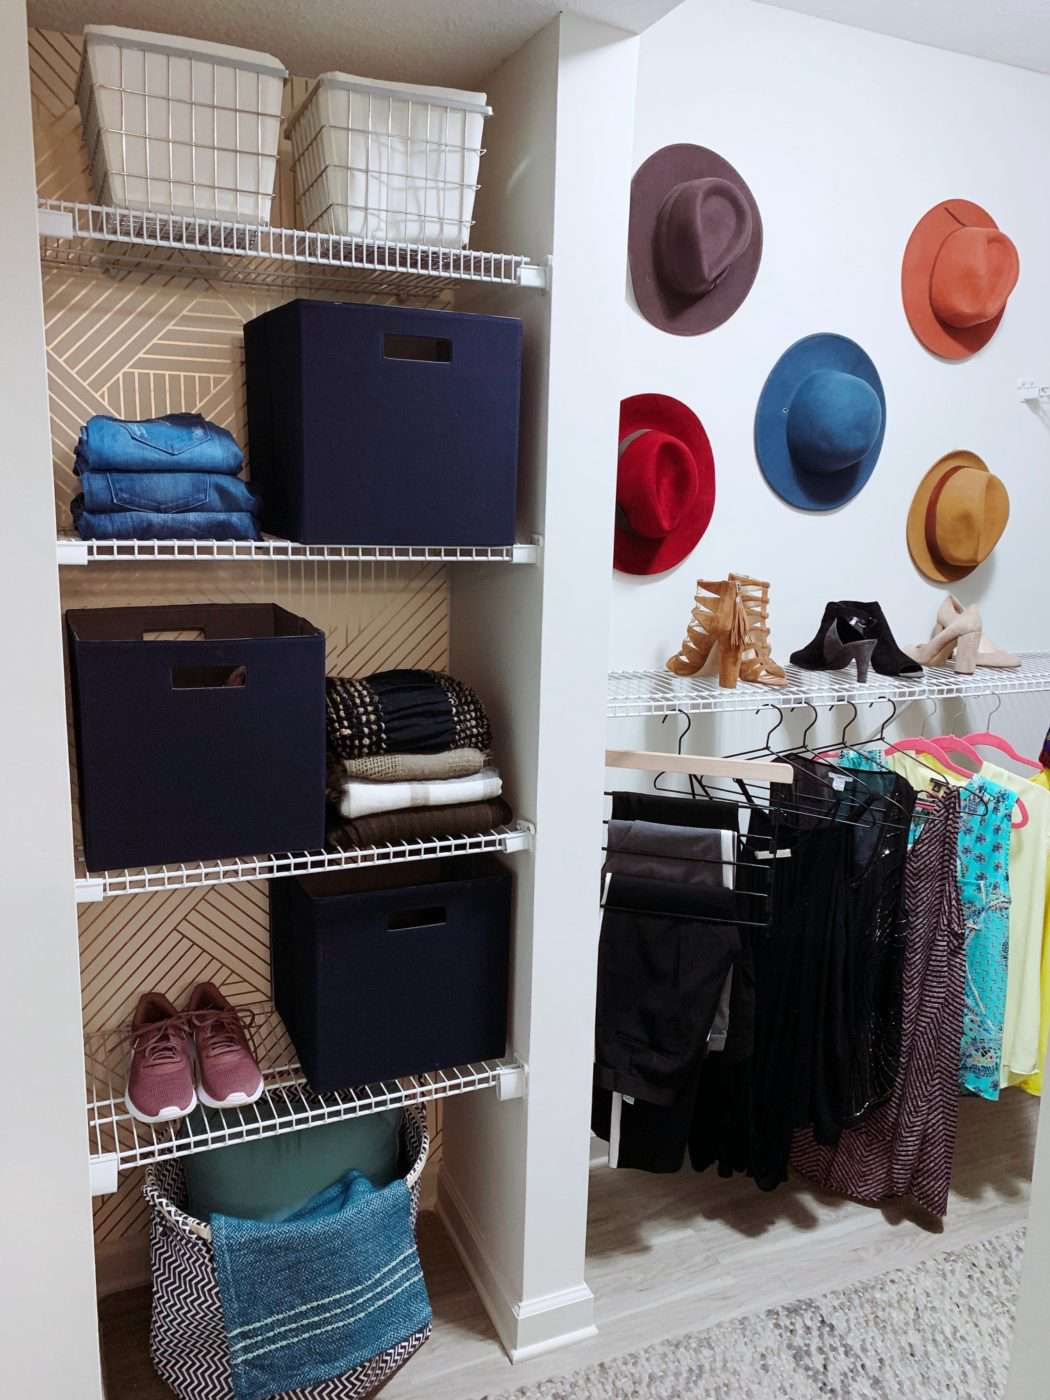 room for hats in walk-in closet